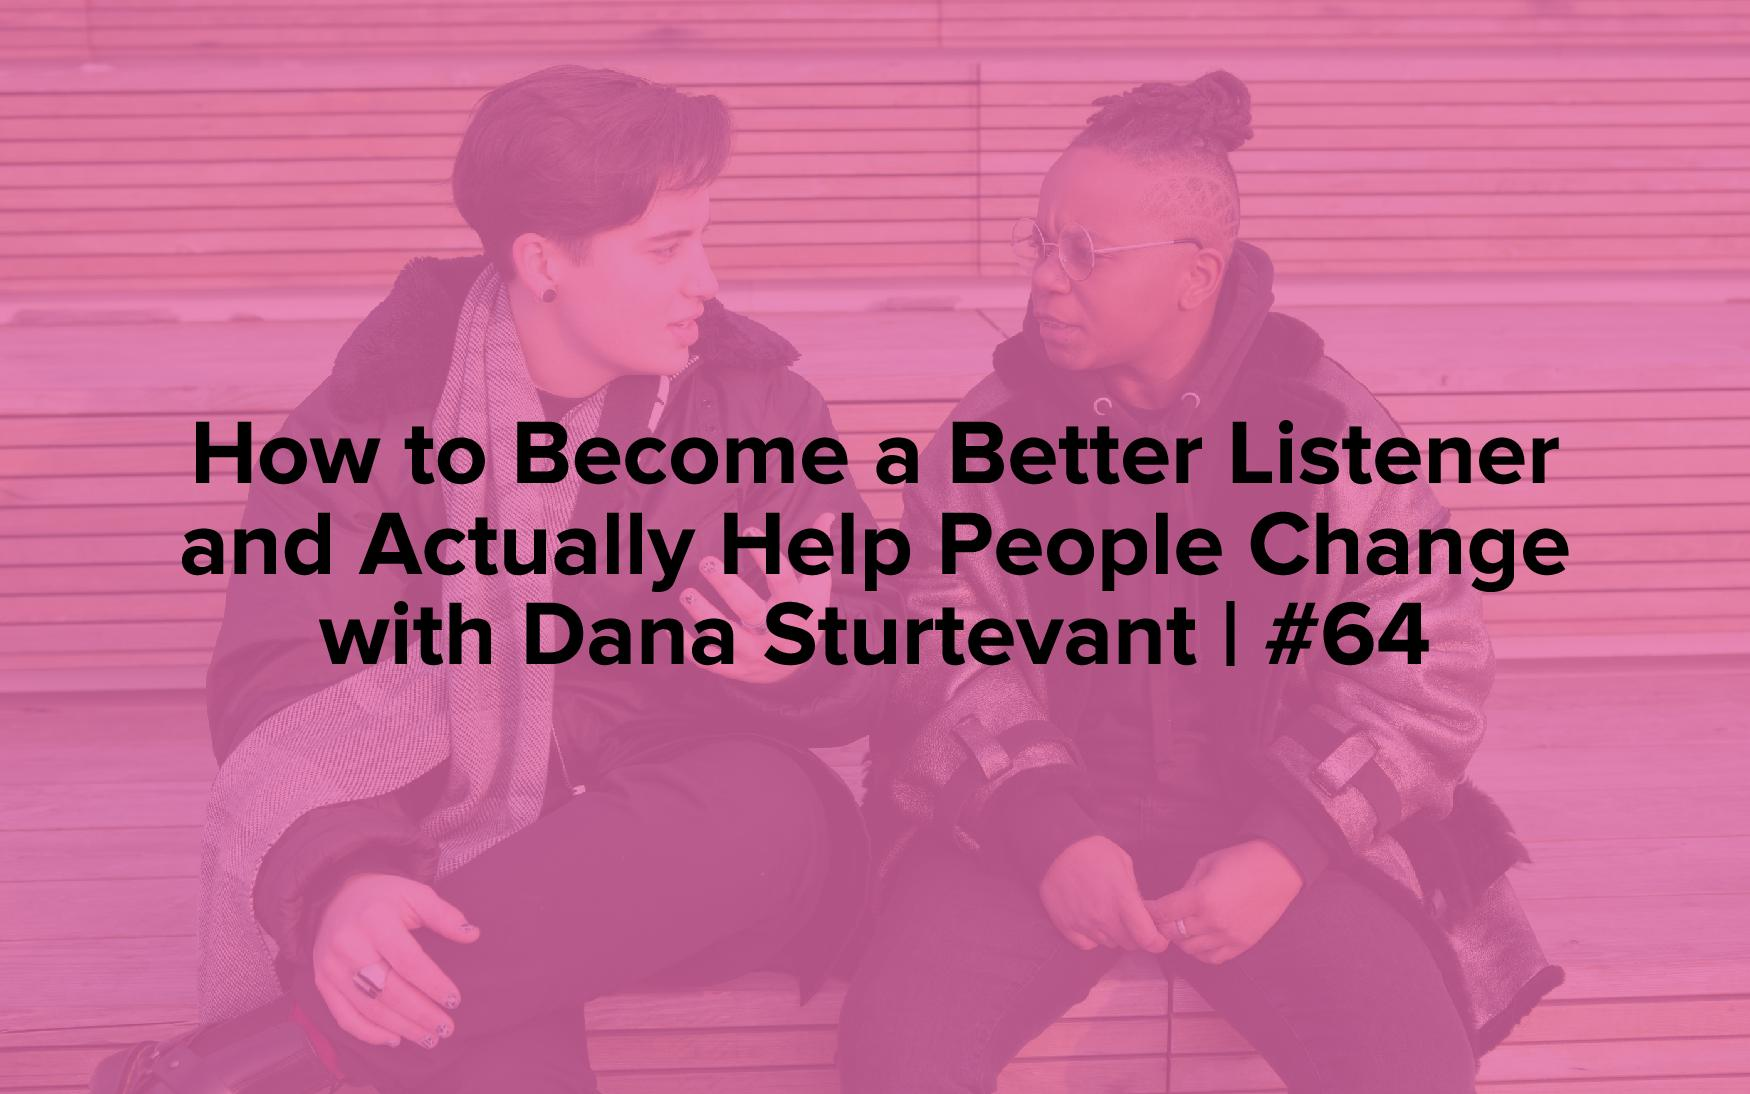 """Image text reads, """"How to Become a Better Listener and Actually Help People Change with Dana Sturtevant 